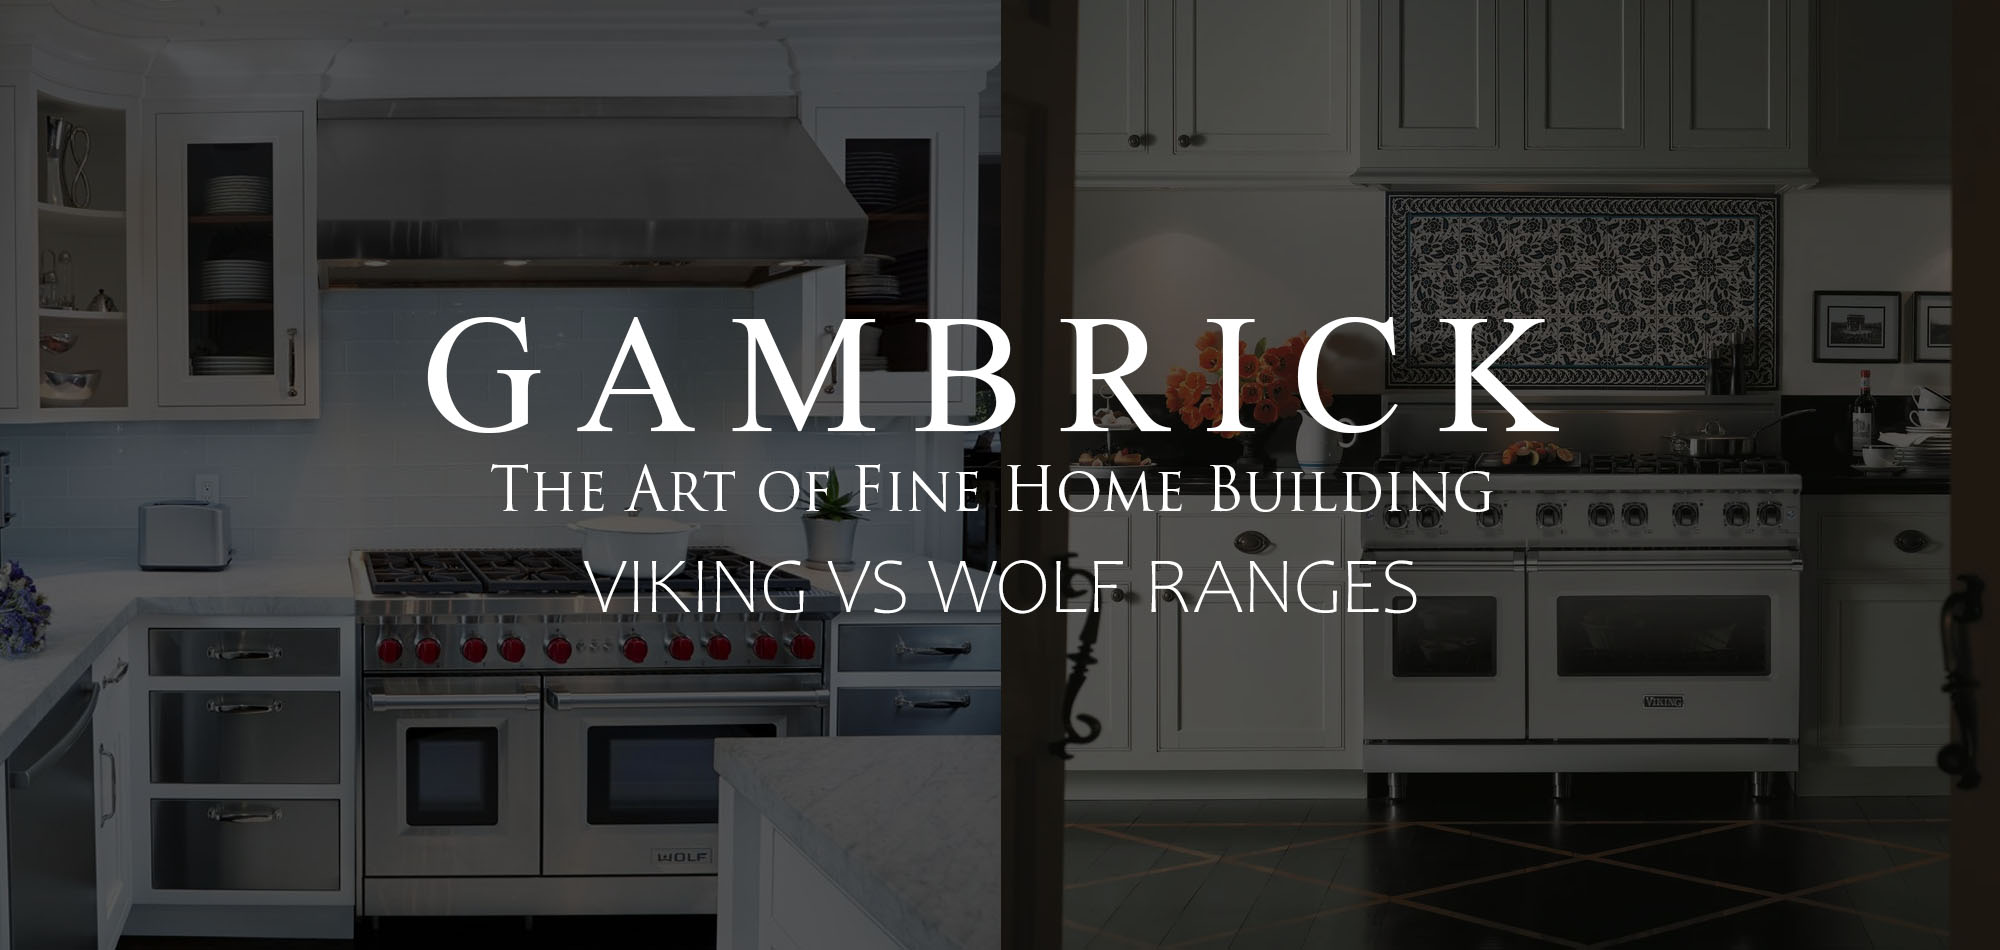 Viking vs Wolf ranges 2019 which is the better gas range banner pic